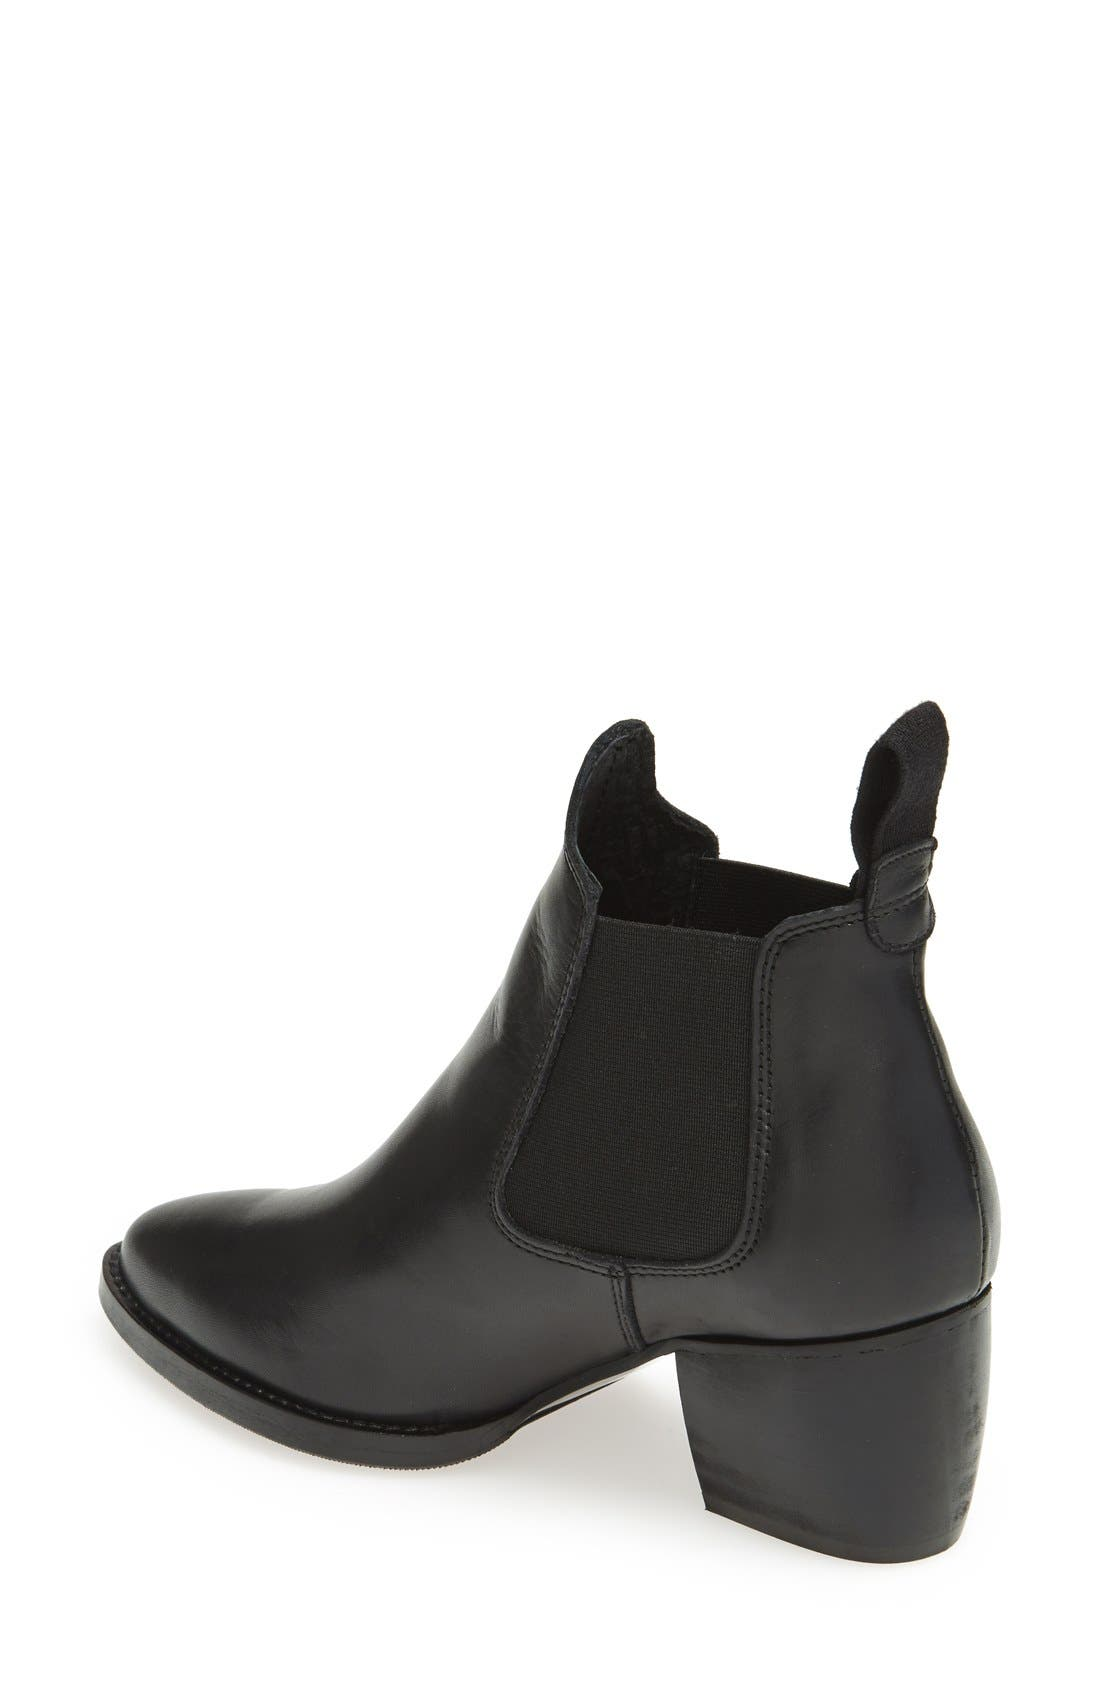 TOPSHOP, 'Margot' Leather Ankle Bootie, Alternate thumbnail 2, color, 001